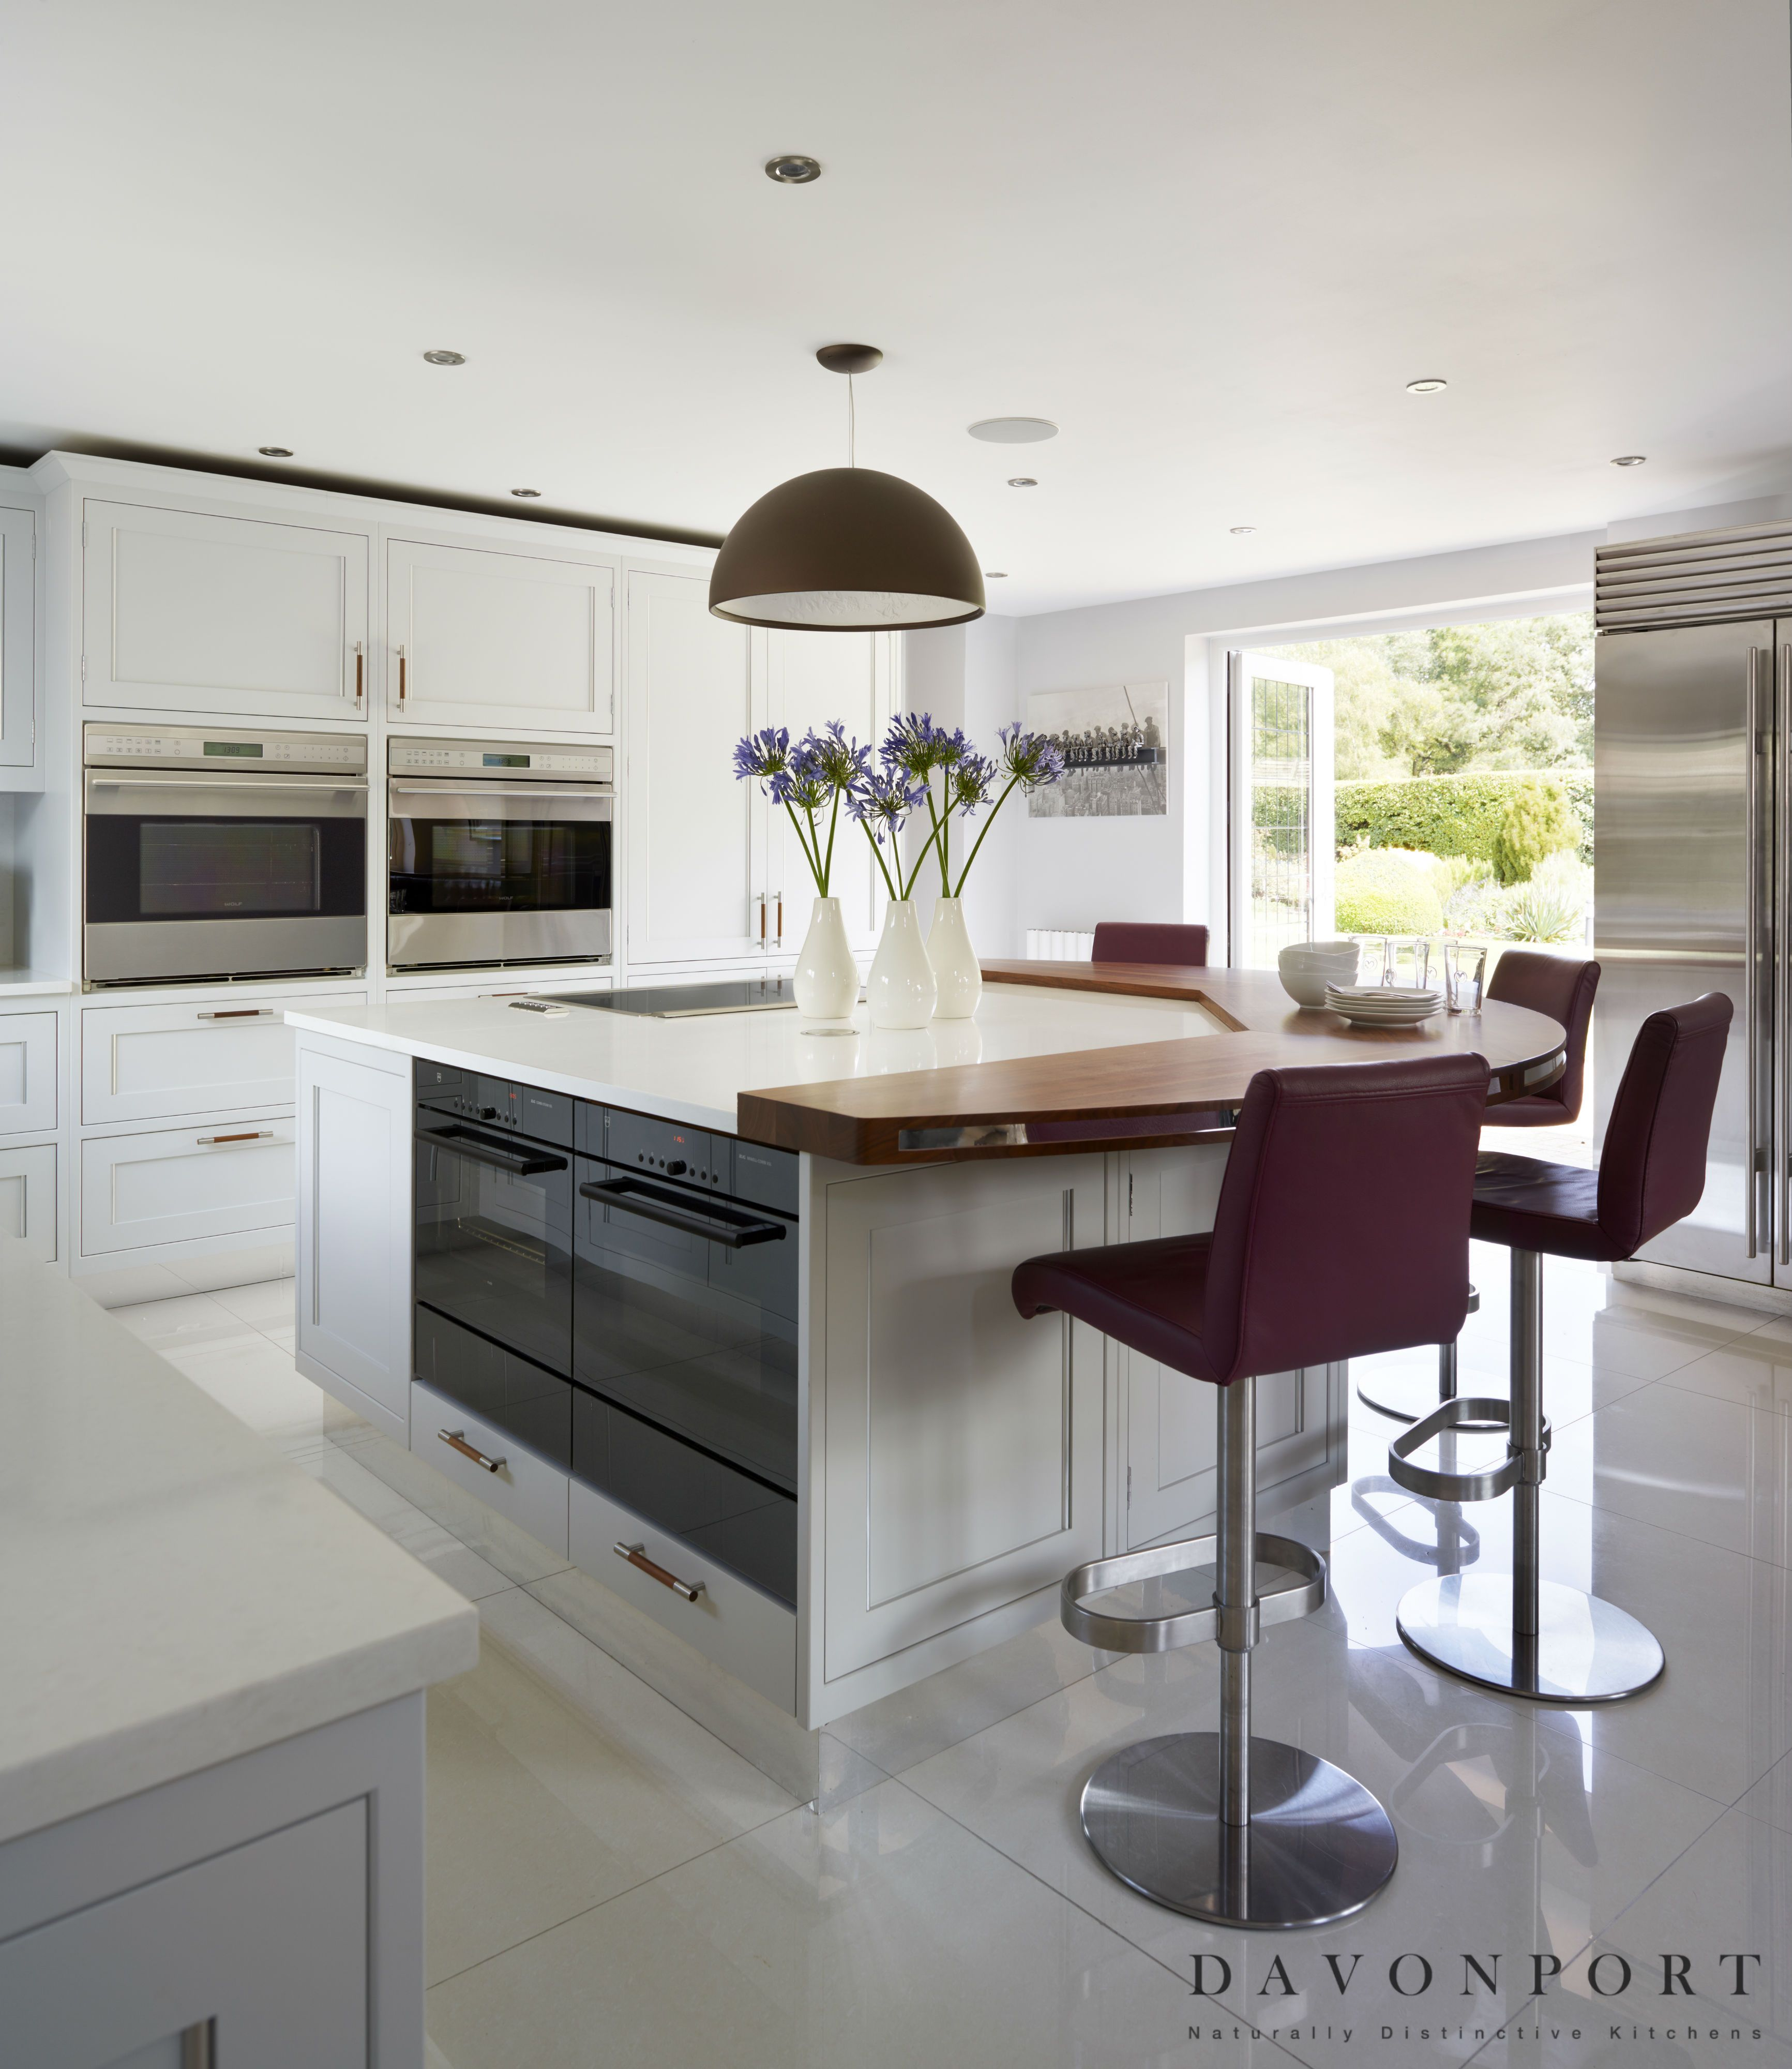 Purple Bar Stools And A Walnut Breakfast Lifts The Very Light Colour Palette